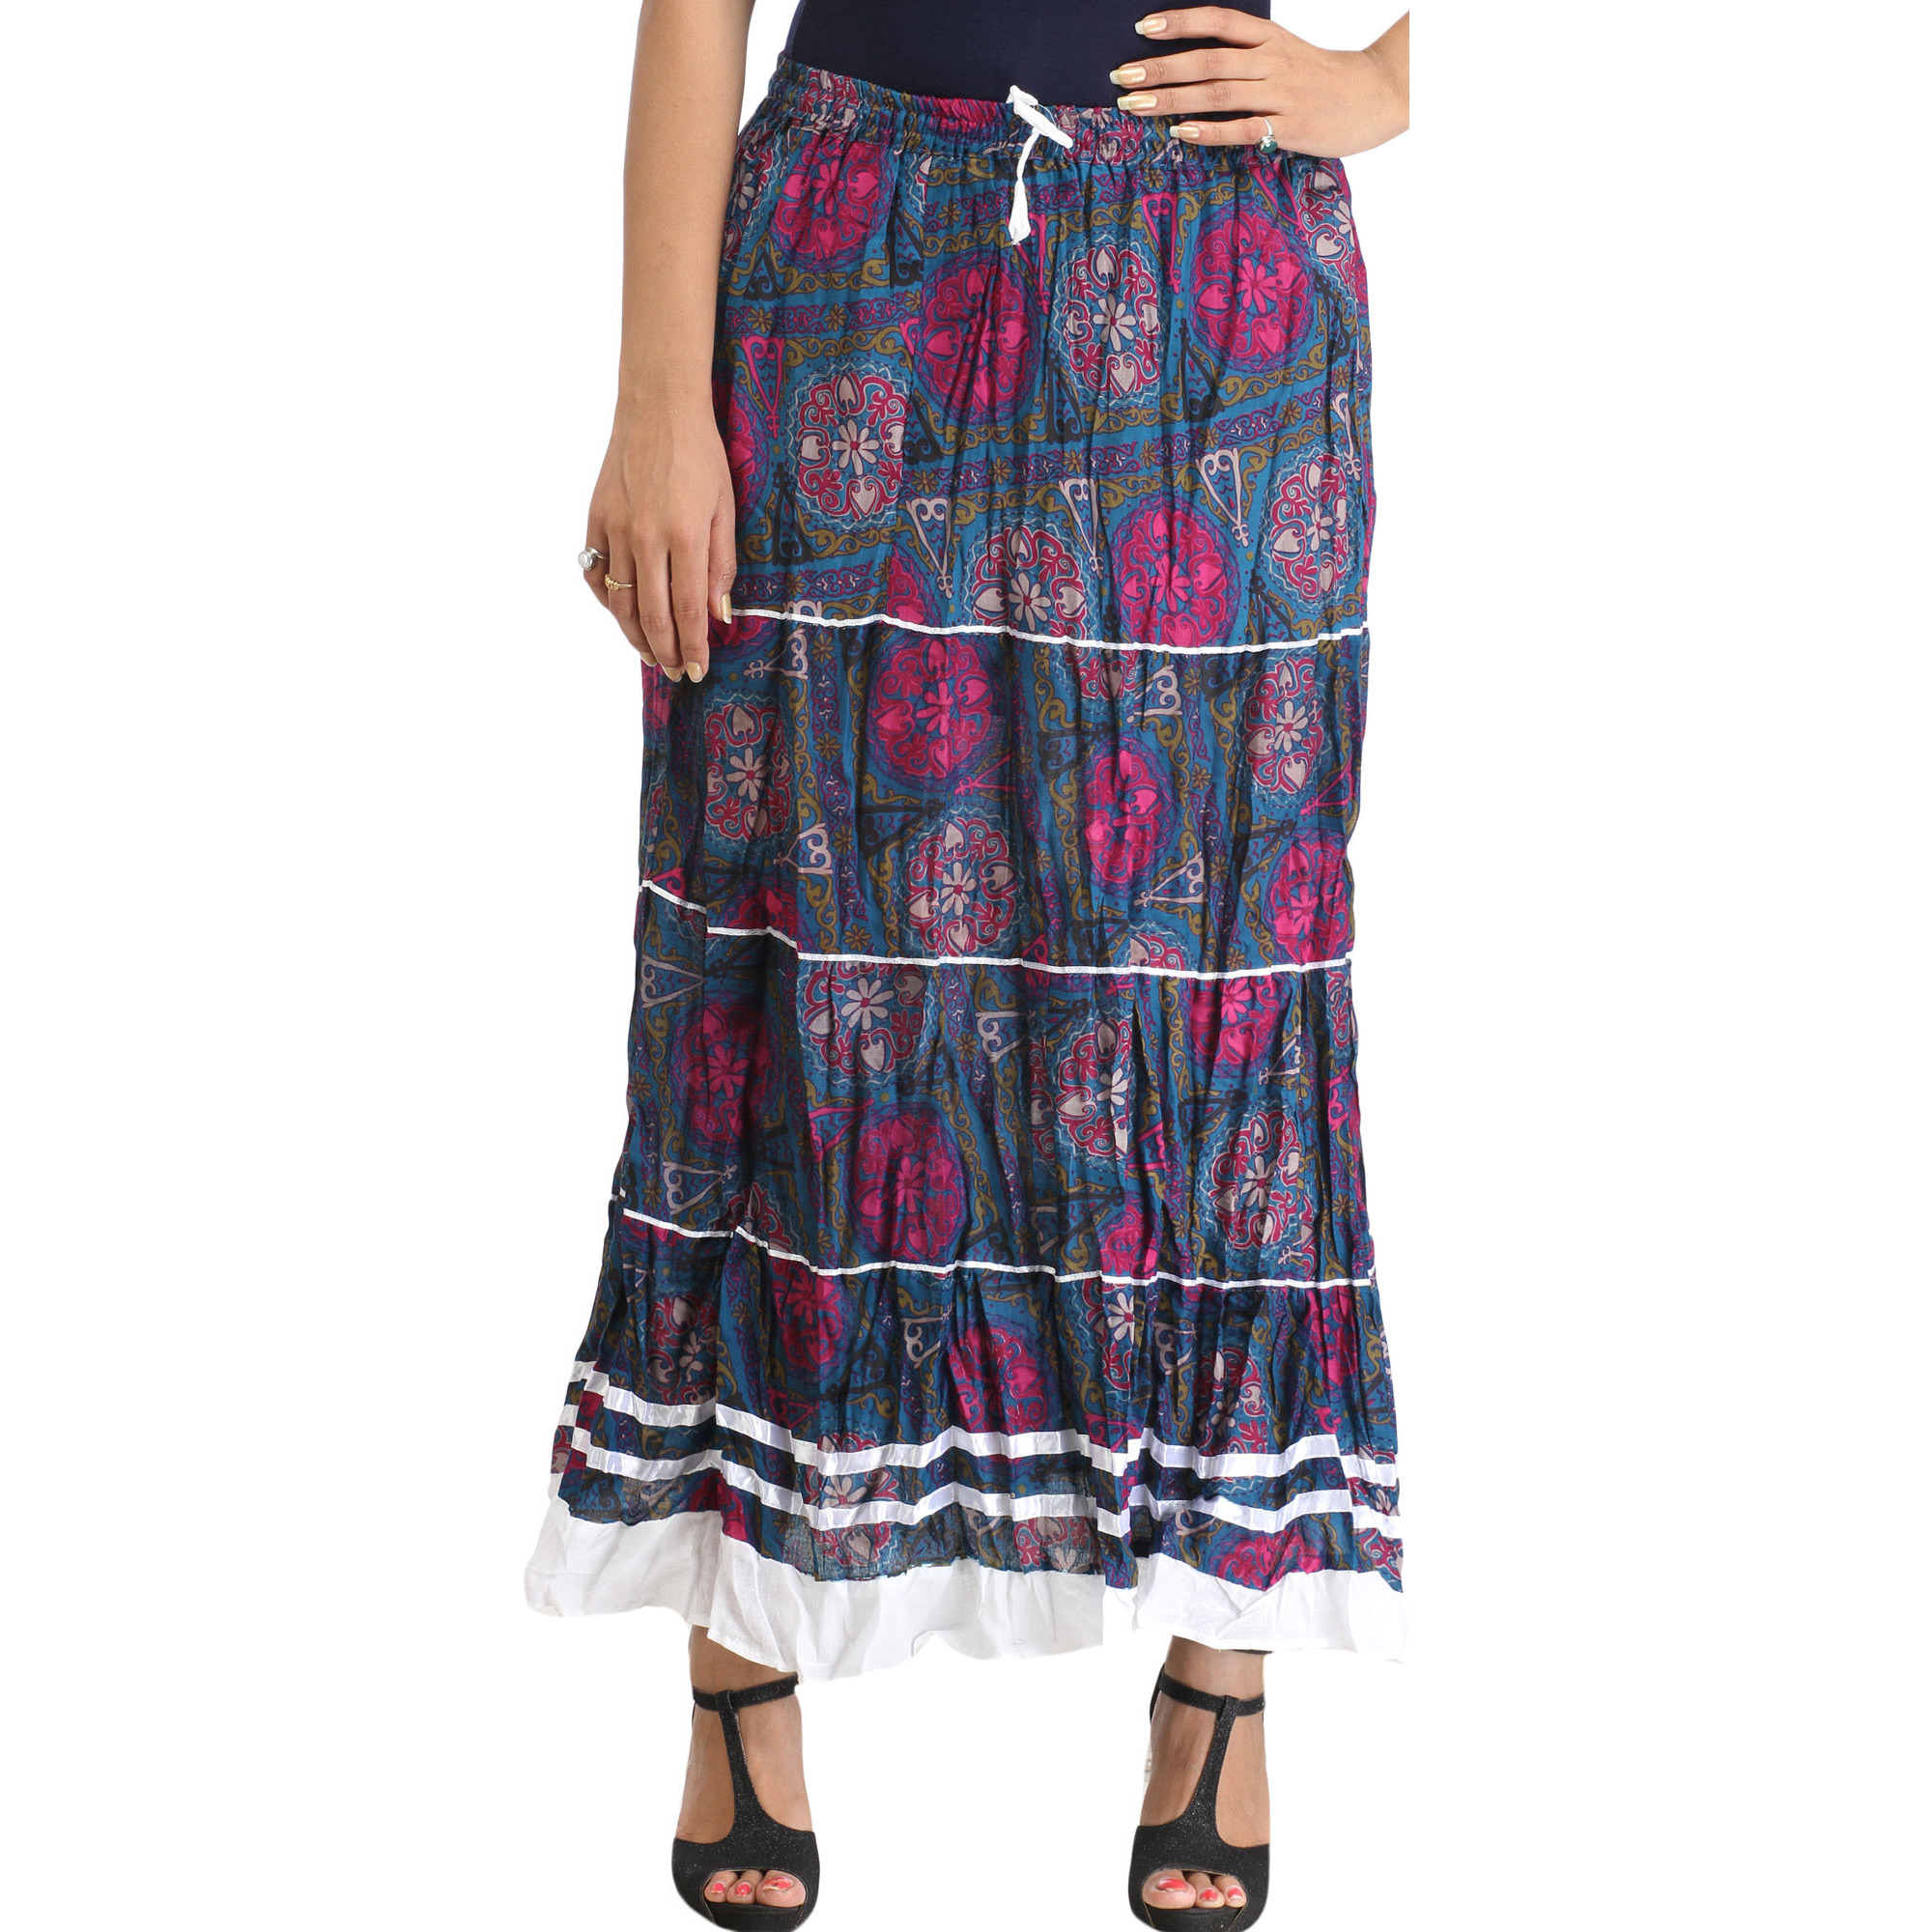 Blue and Purple Long Skirt with Floral-Print and Ribbons